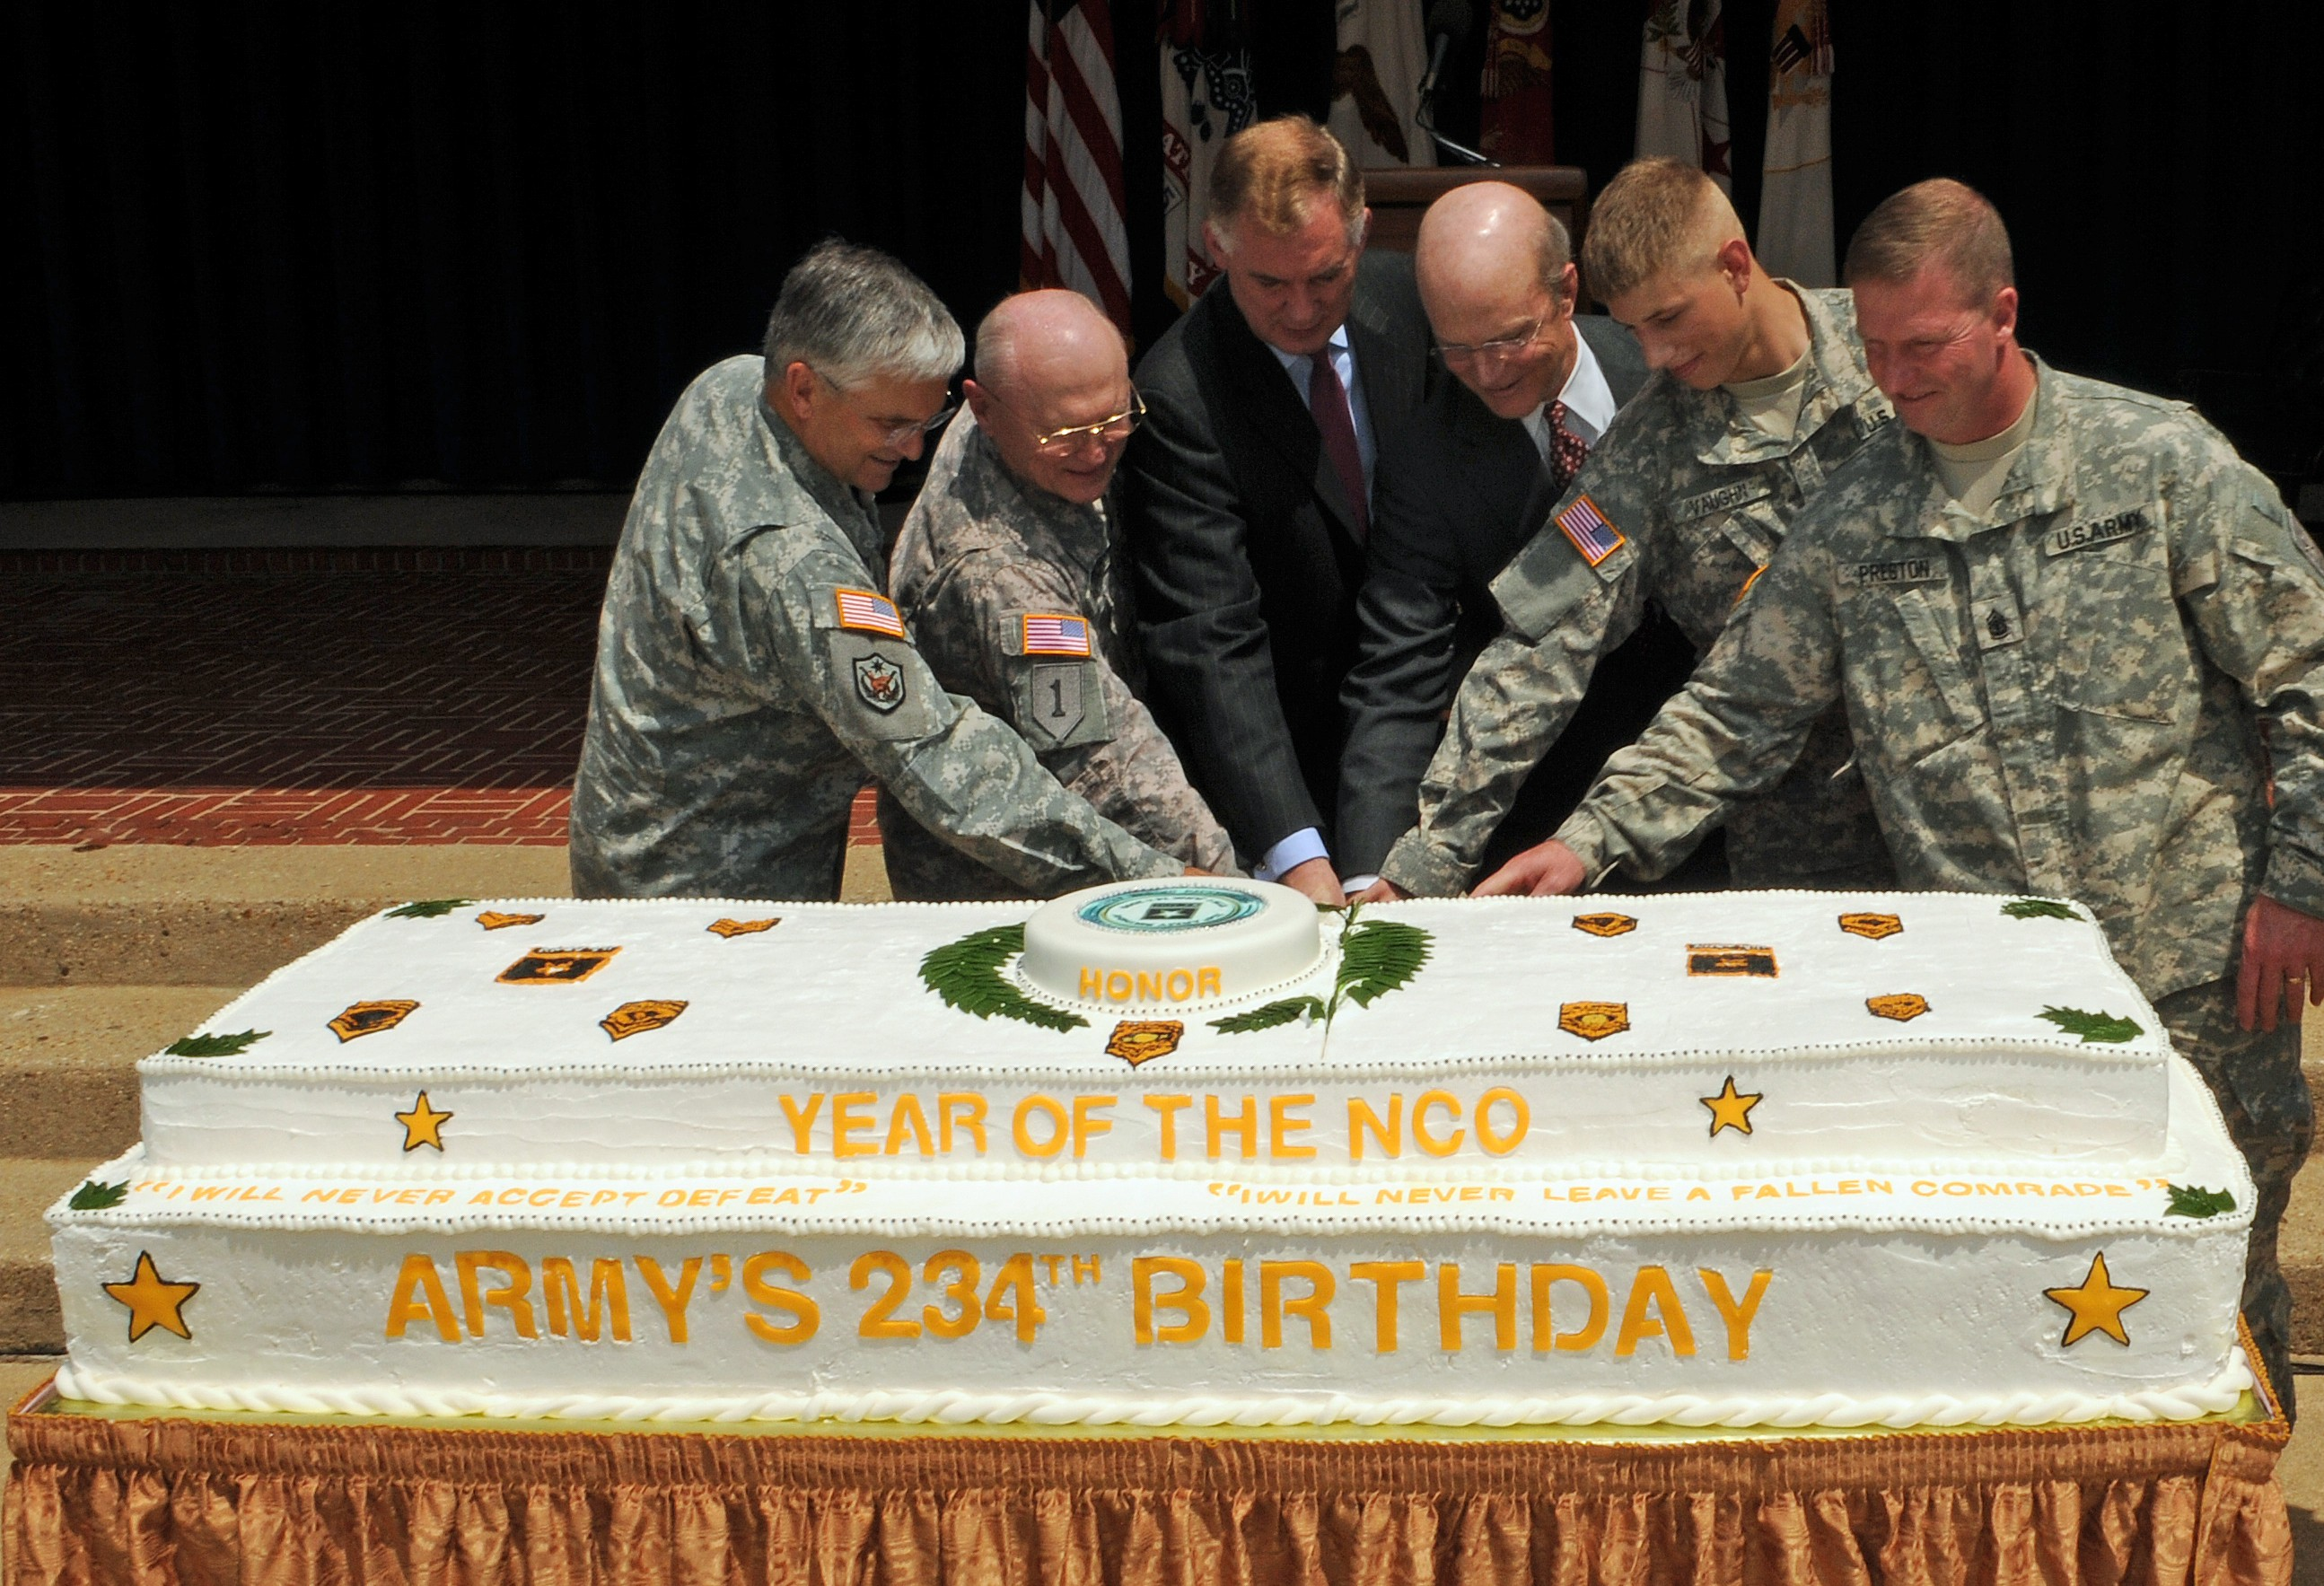 Army Celebrates 234th Birthday At Pentagon Article The United